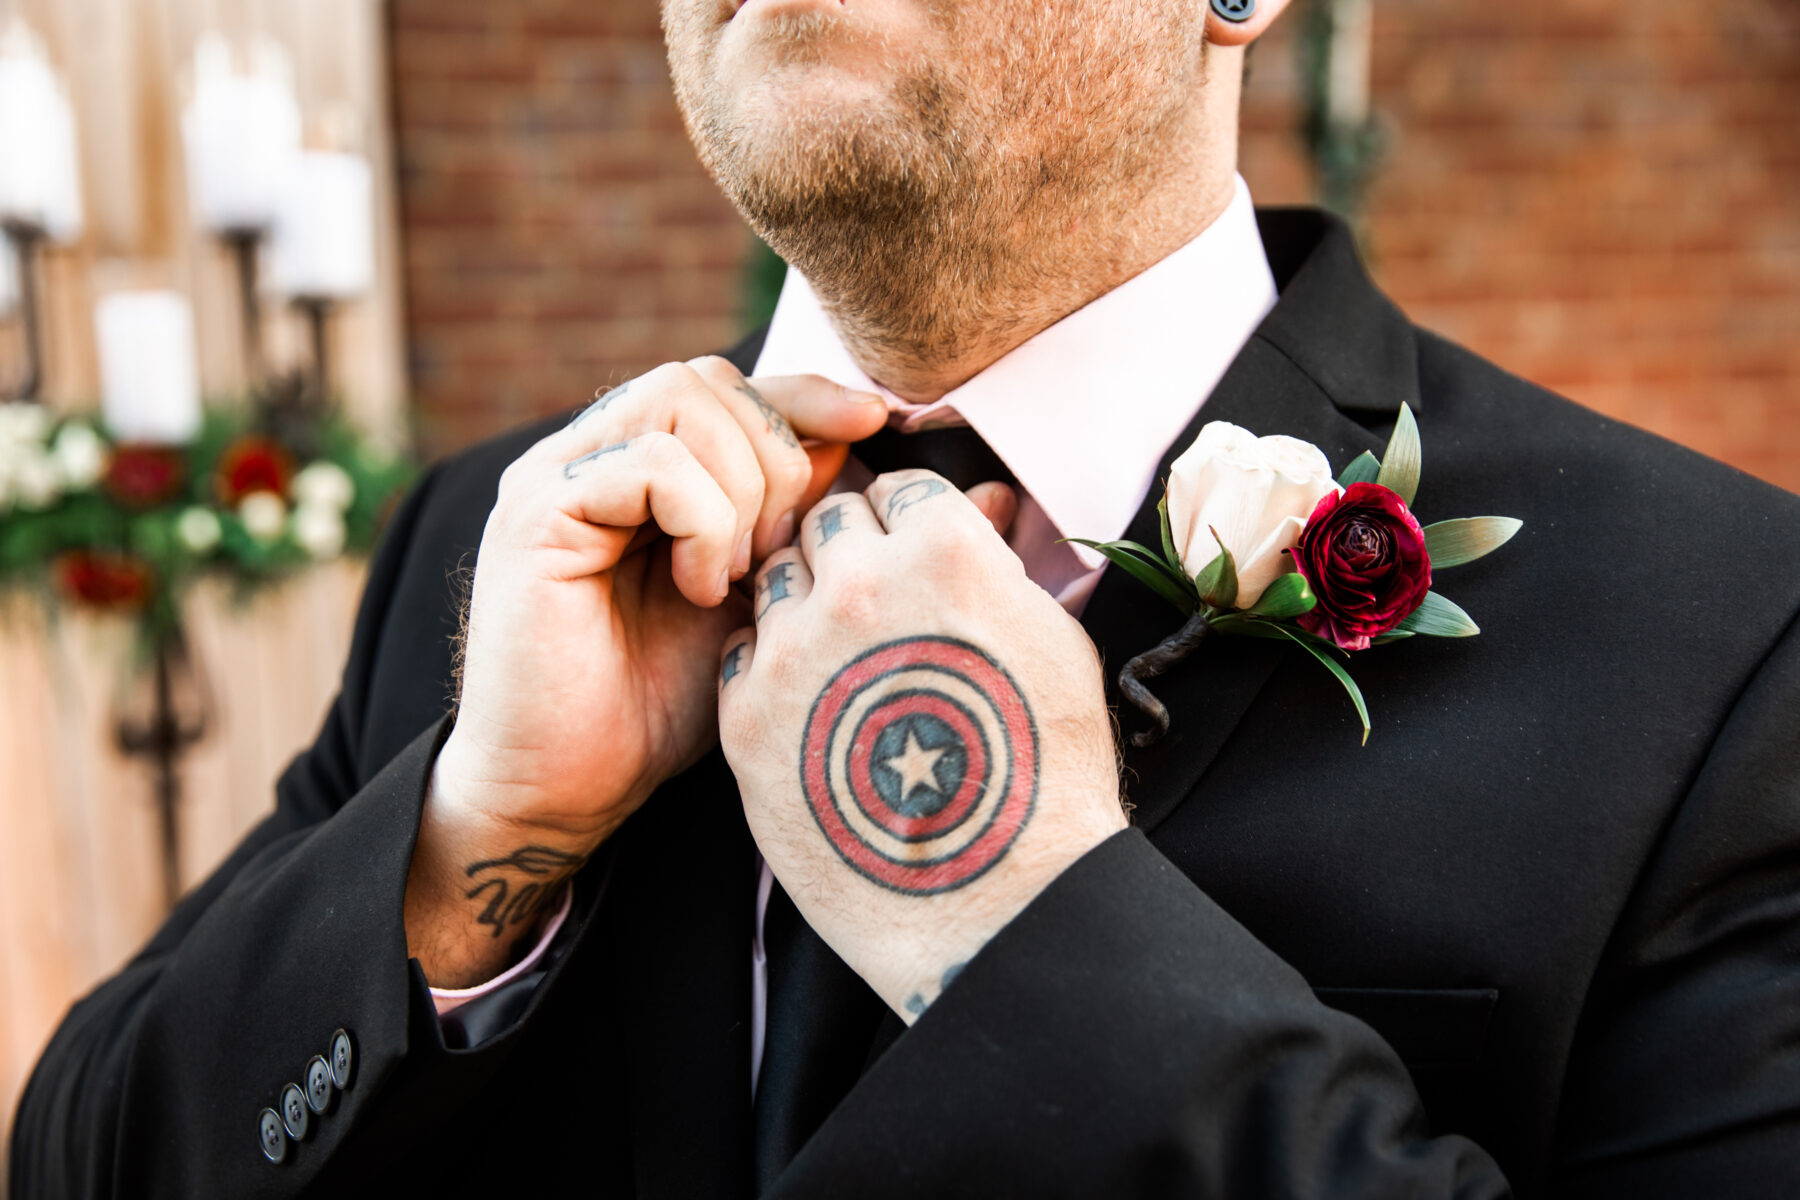 Groom's boutonniere: Nashville Wish Upon a Wedding captured by Nyk + Cali Photography featured on Nashville Bride Guide